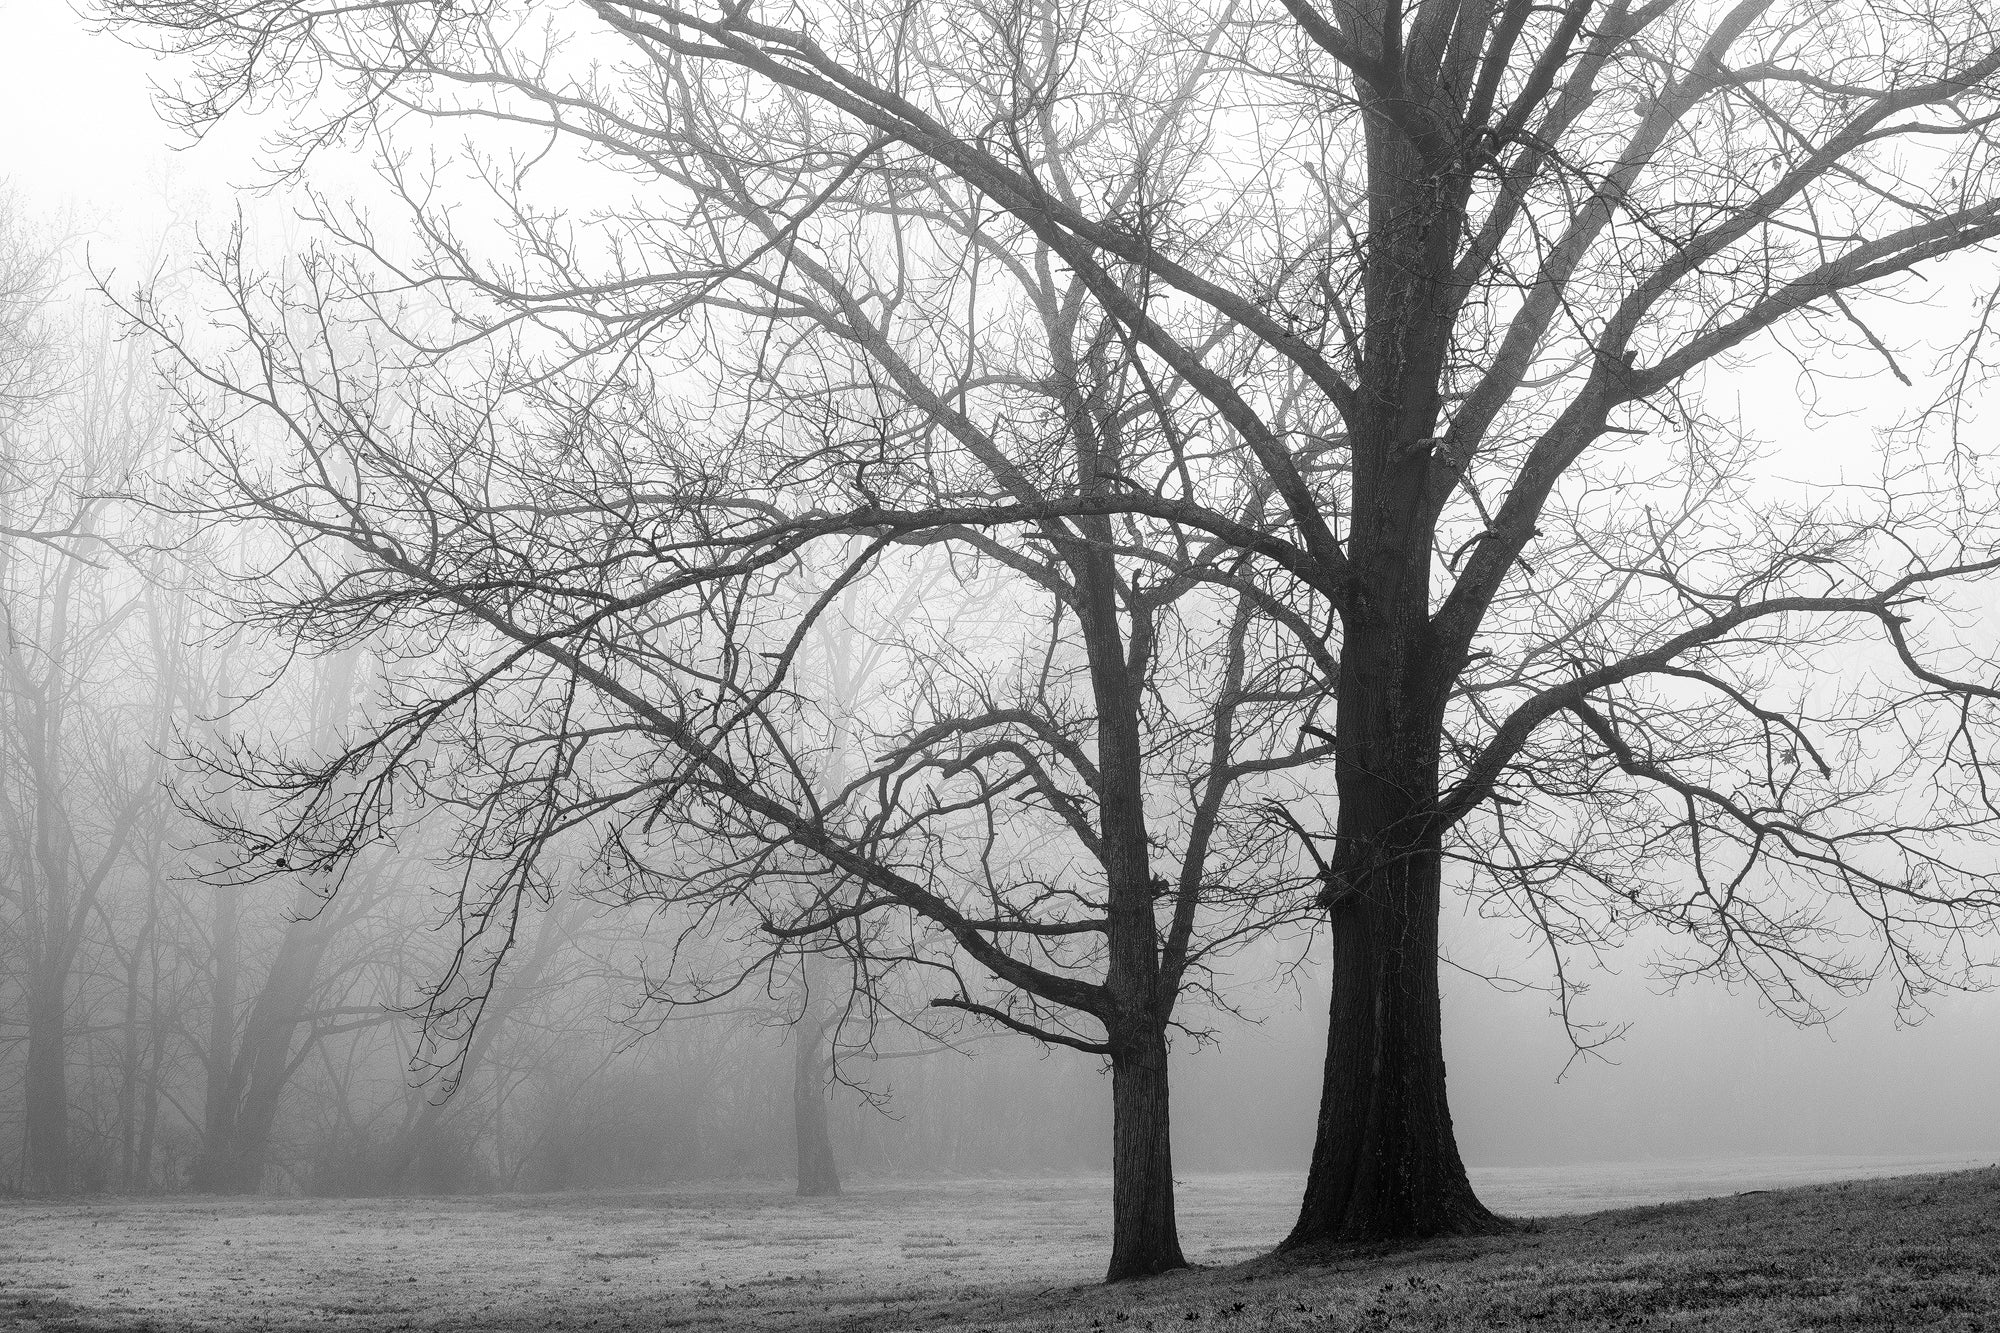 Big Trees in Morning Fog - Black and White Landscape Photograph by Keith Dotson. Click to buy a fine art print.